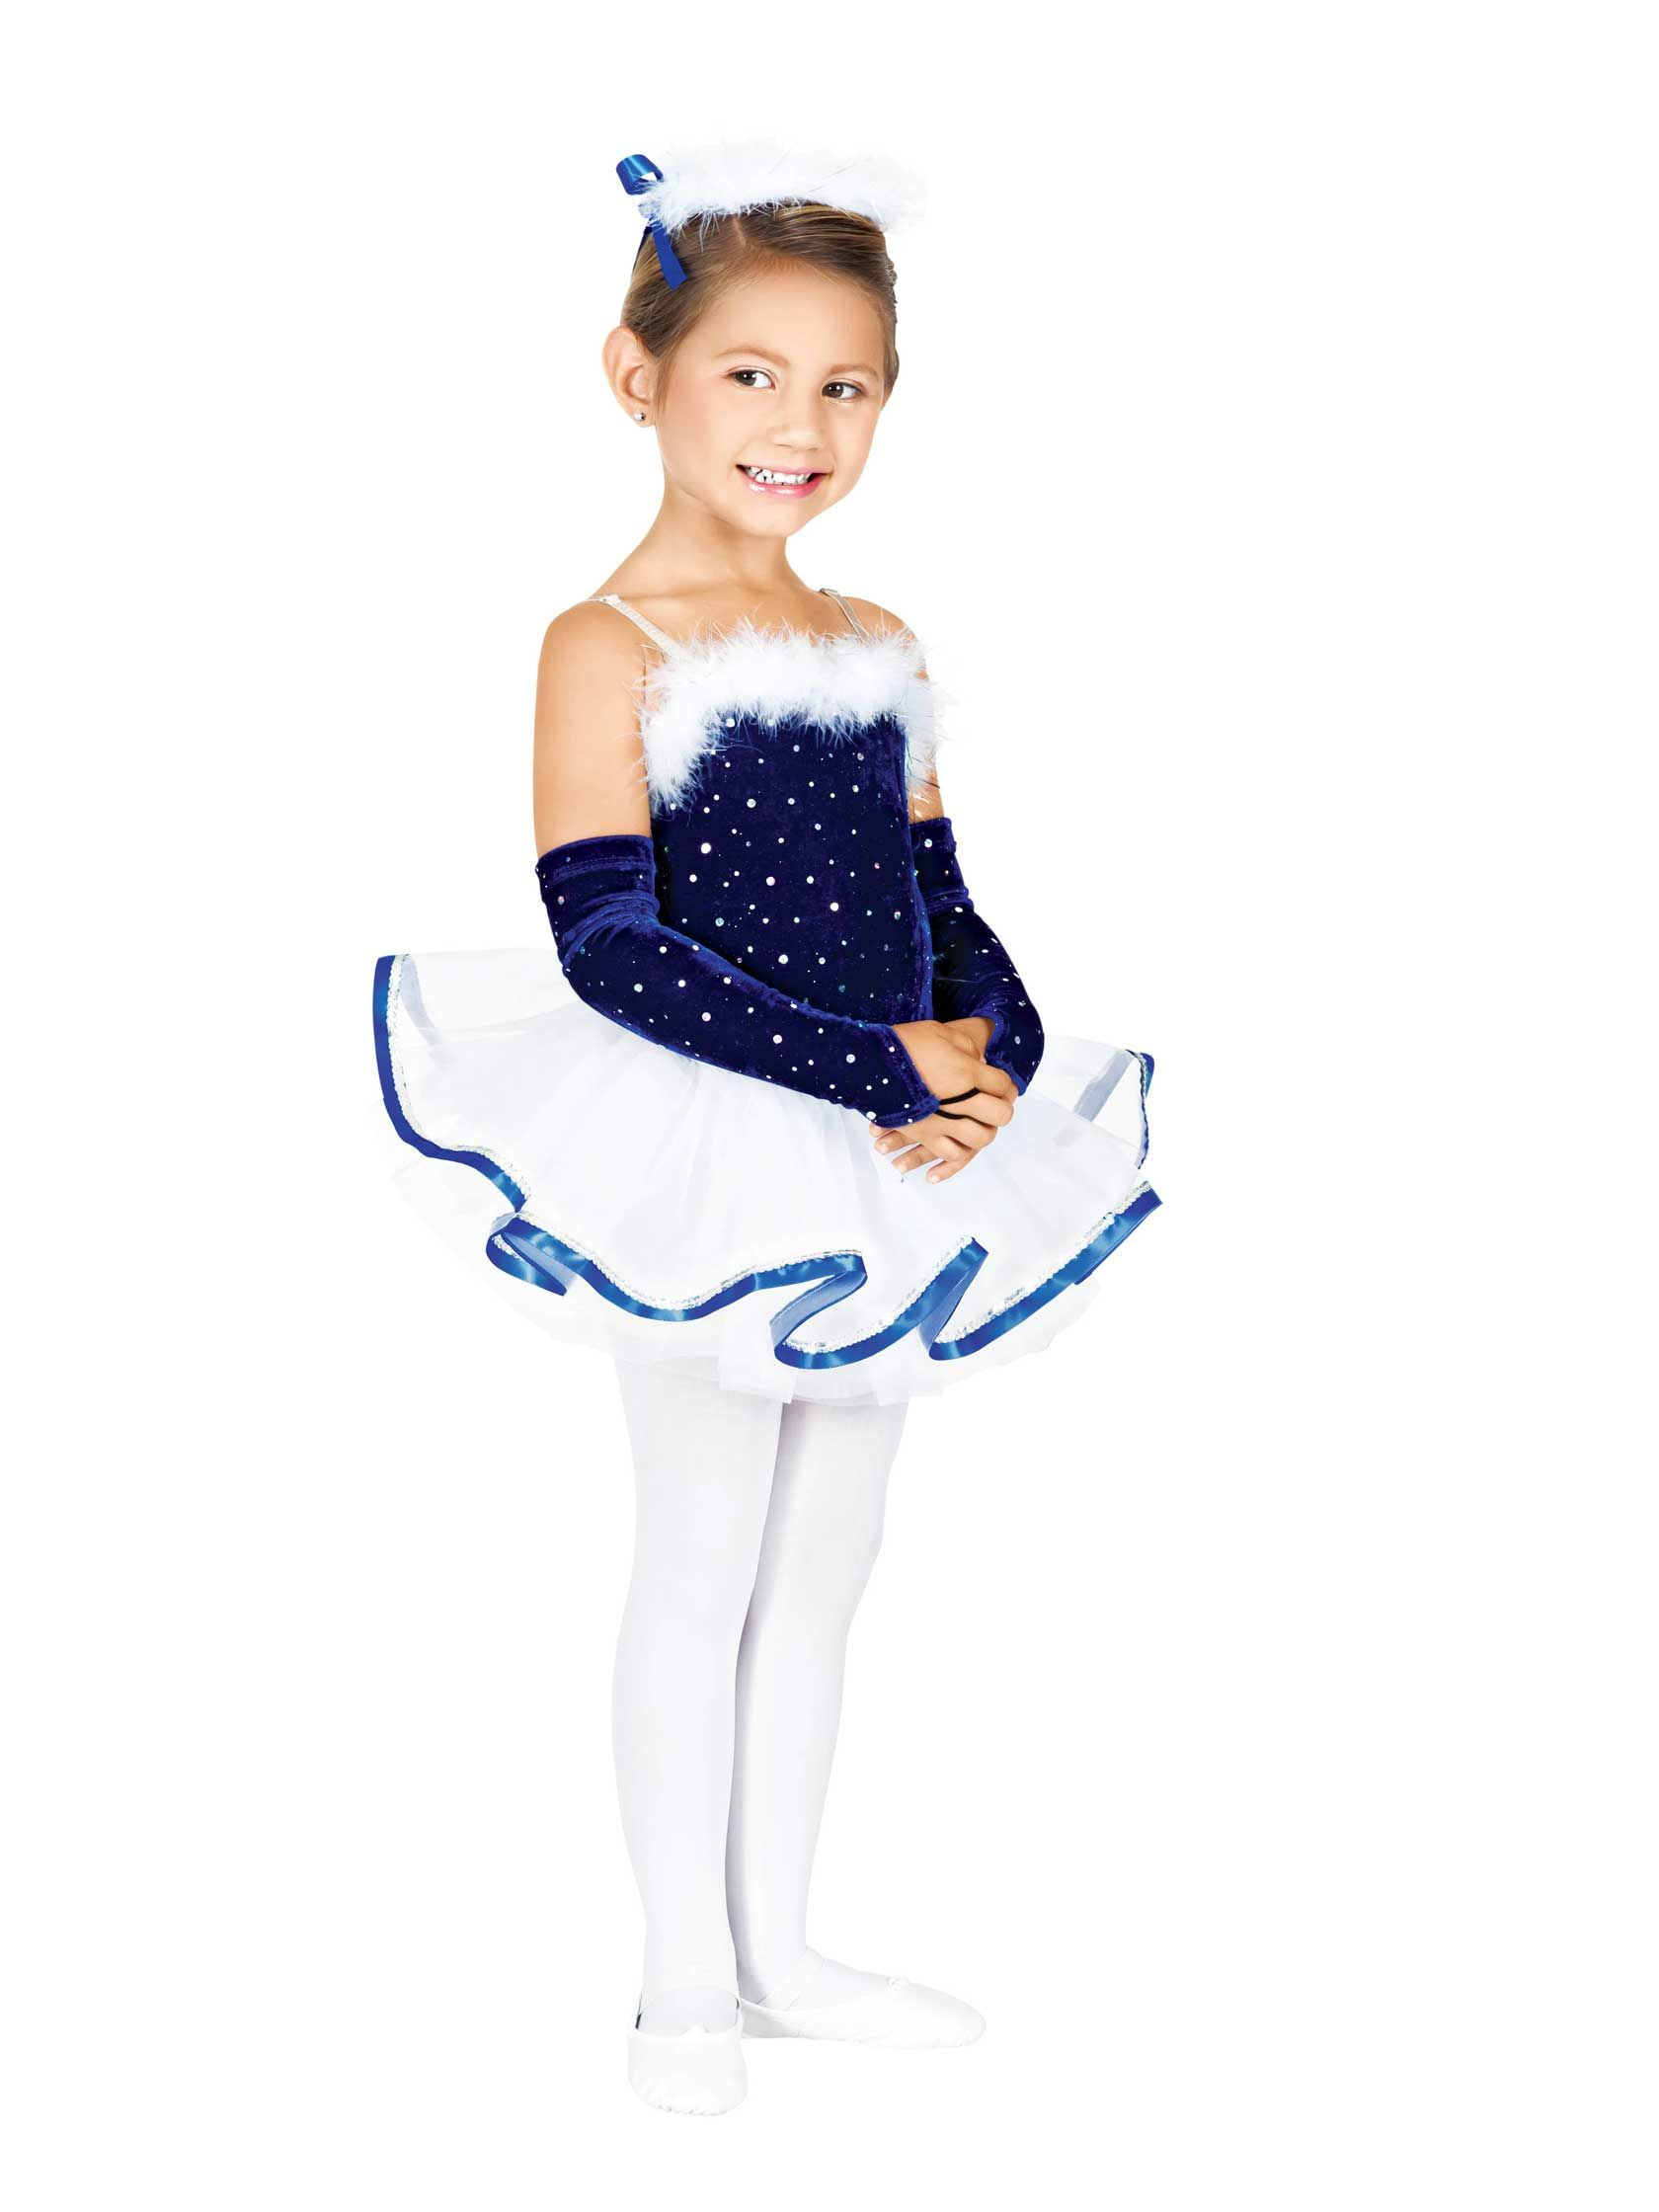 Winter Wonderland Th3009c By Theatricals A New Costume Line By Discount Dance Supply Discountdance Girls Dance Costumes Dance Costumes Kids Tap Costumes